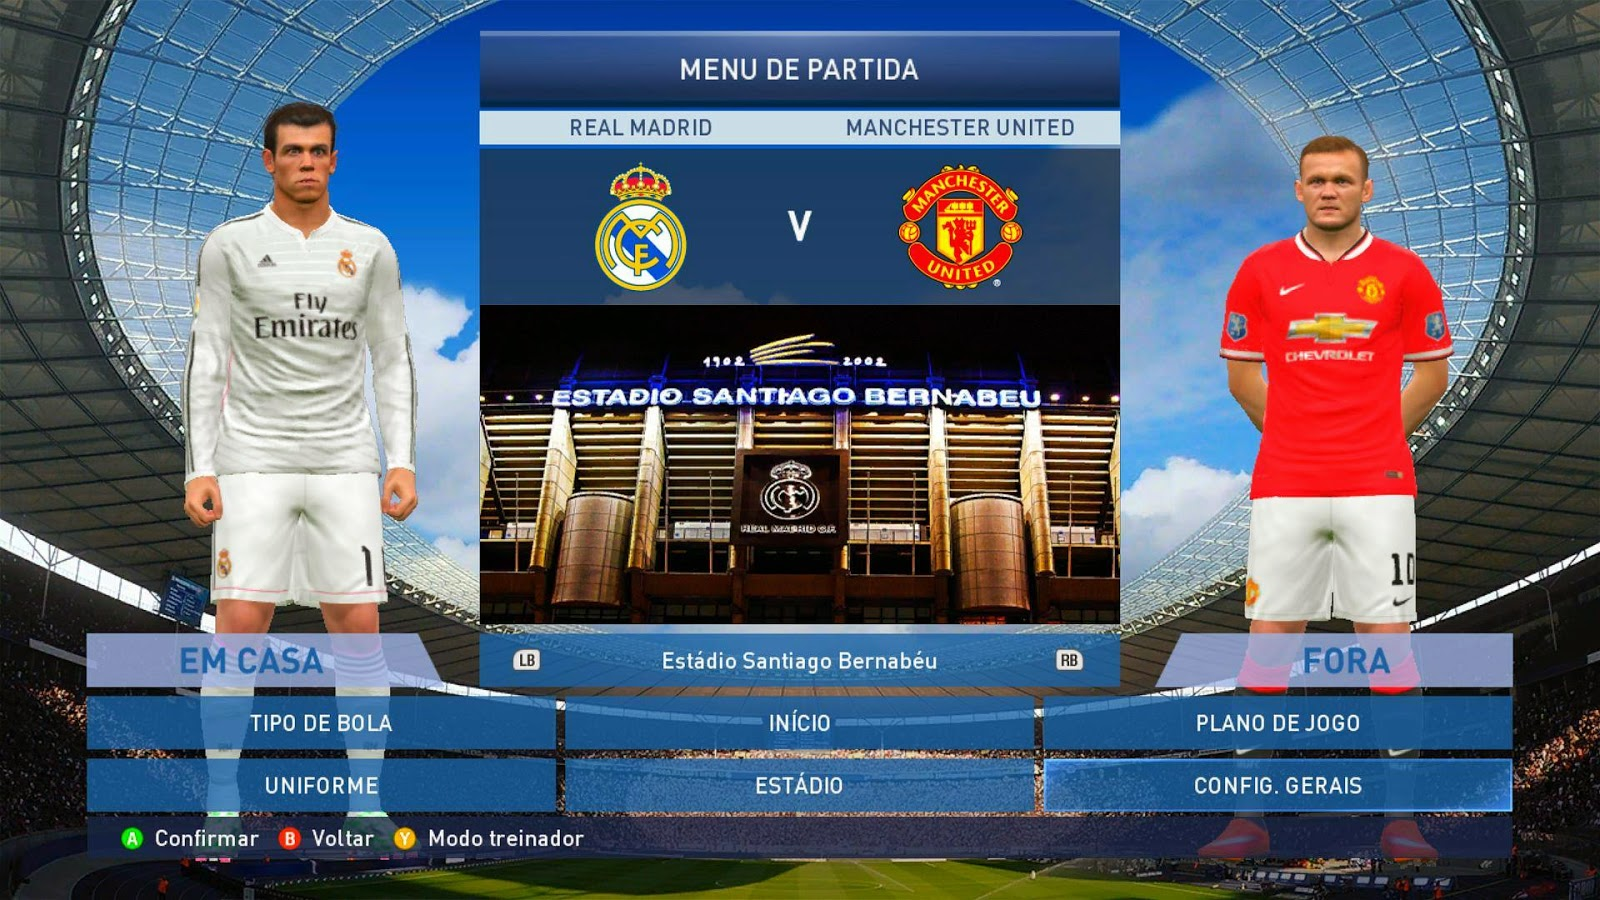 PES 2015: Estádio Santiago Bernabéu - Real Madrid HD 1980156_721144531303889_2775950516572636920_o